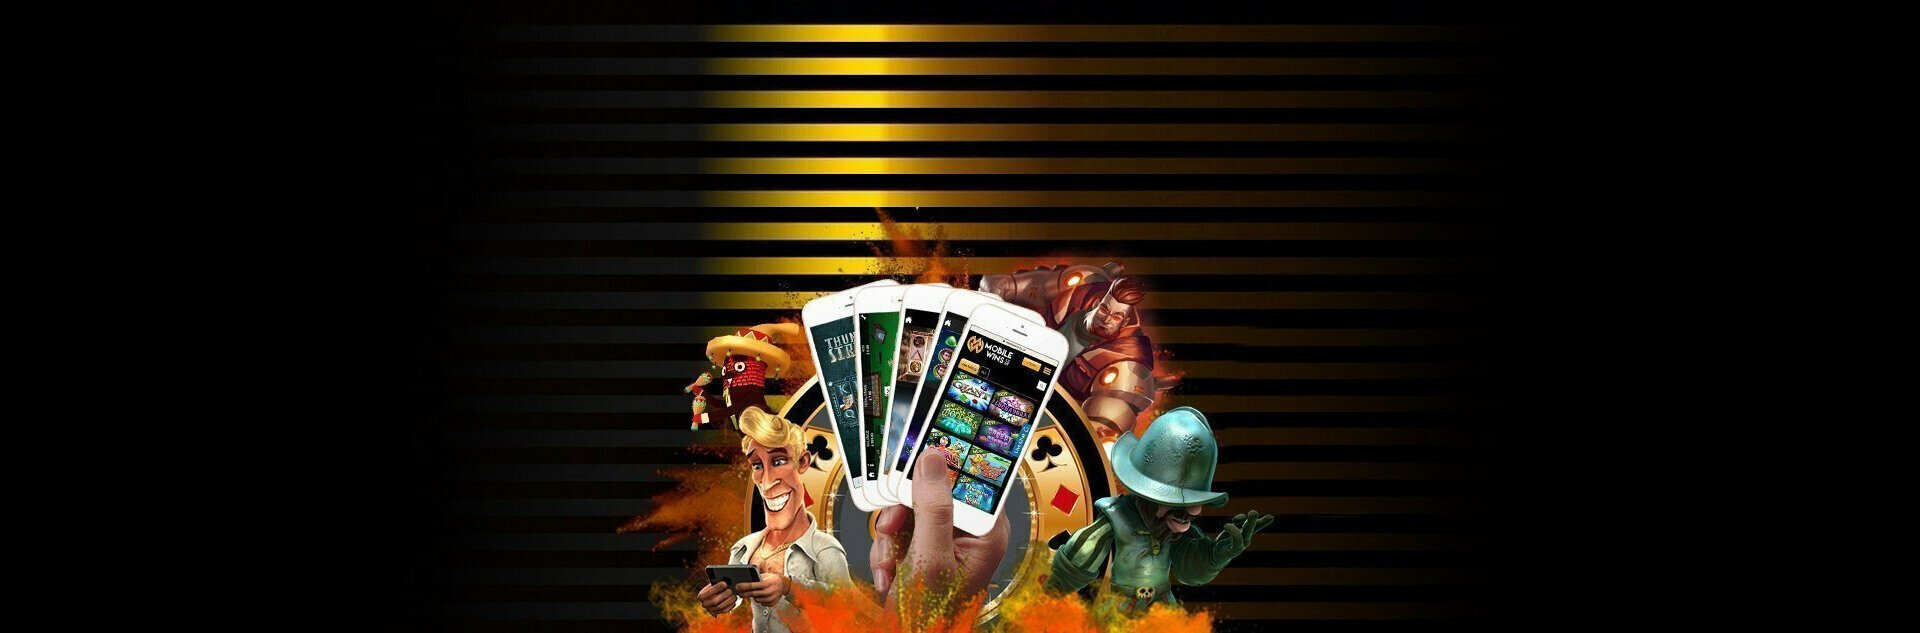 Mobile Wins Casino review UK